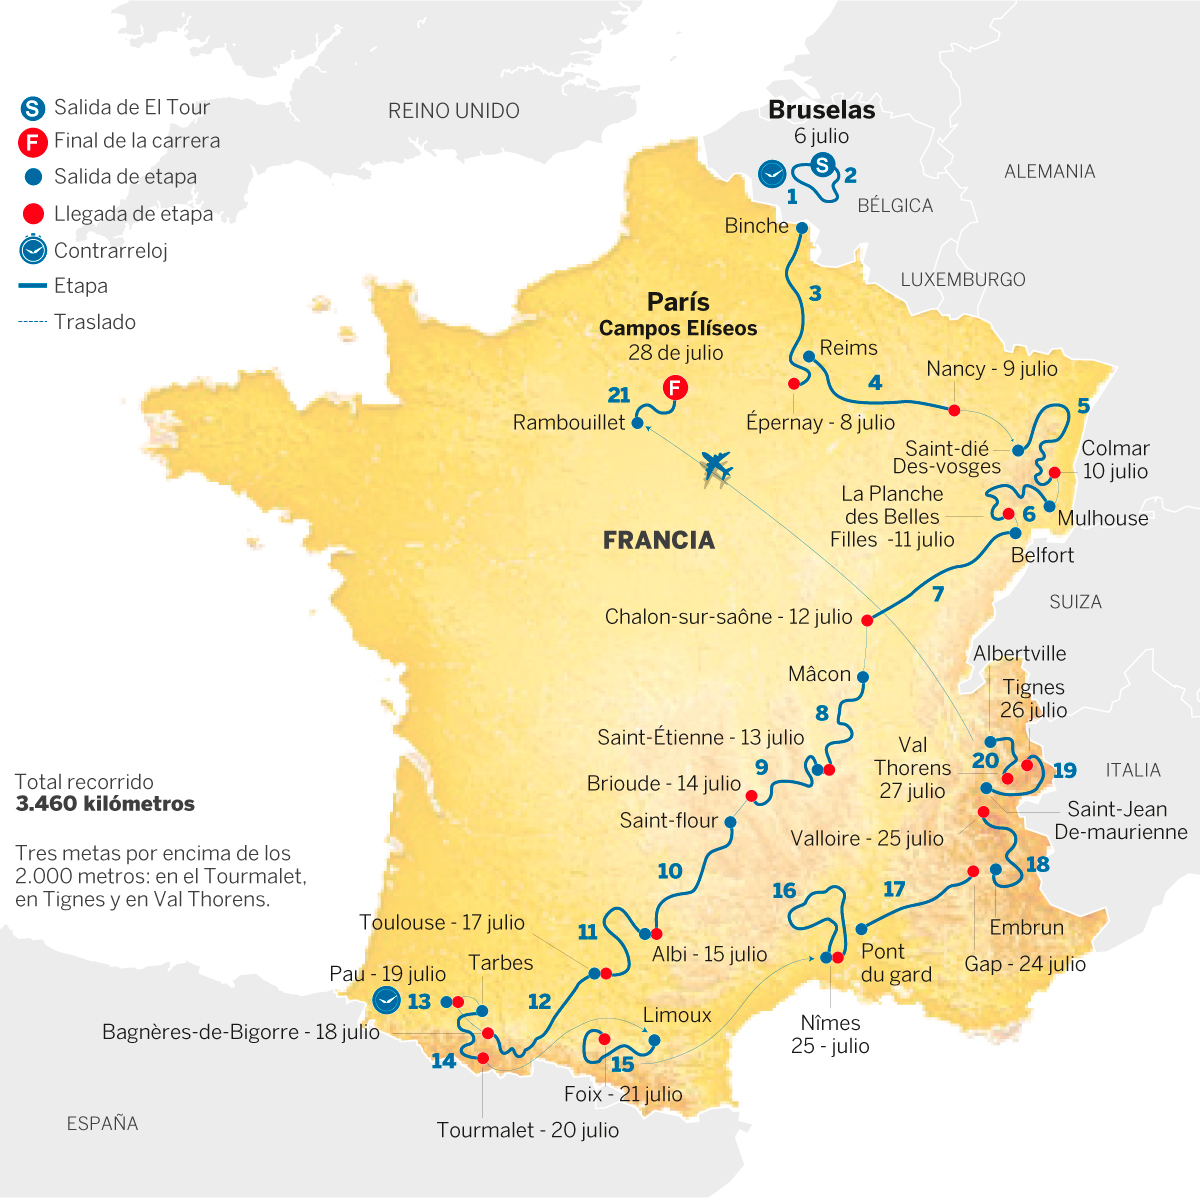 Calendario Tour De France 2019.Calendario Tour De Francia 2019 En El Pais